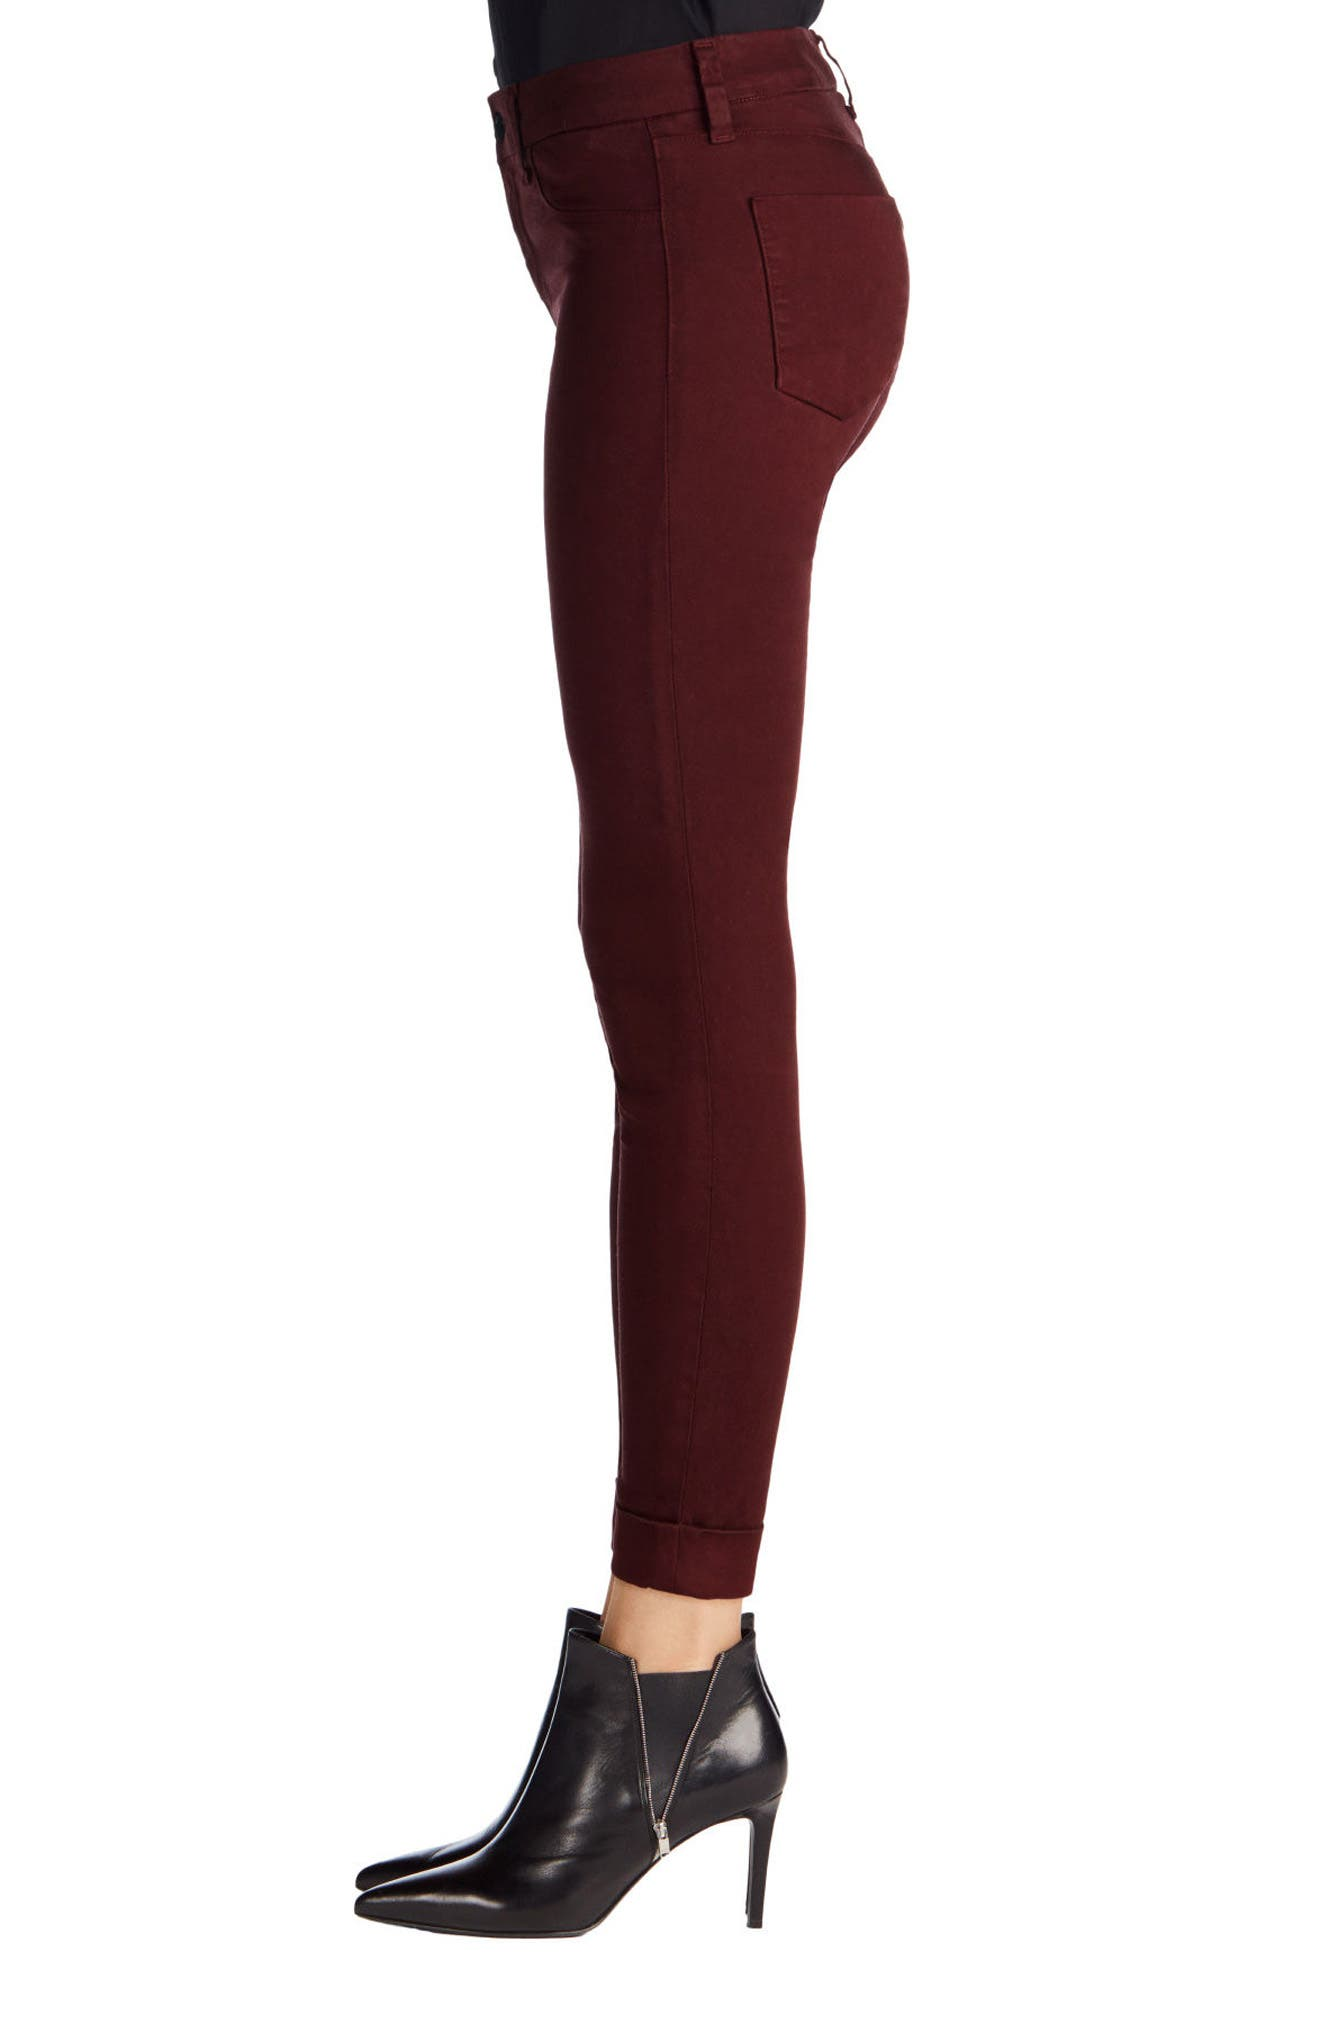 'Anja' Cuffed Crop Skinny Jeans,                             Alternate thumbnail 23, color,